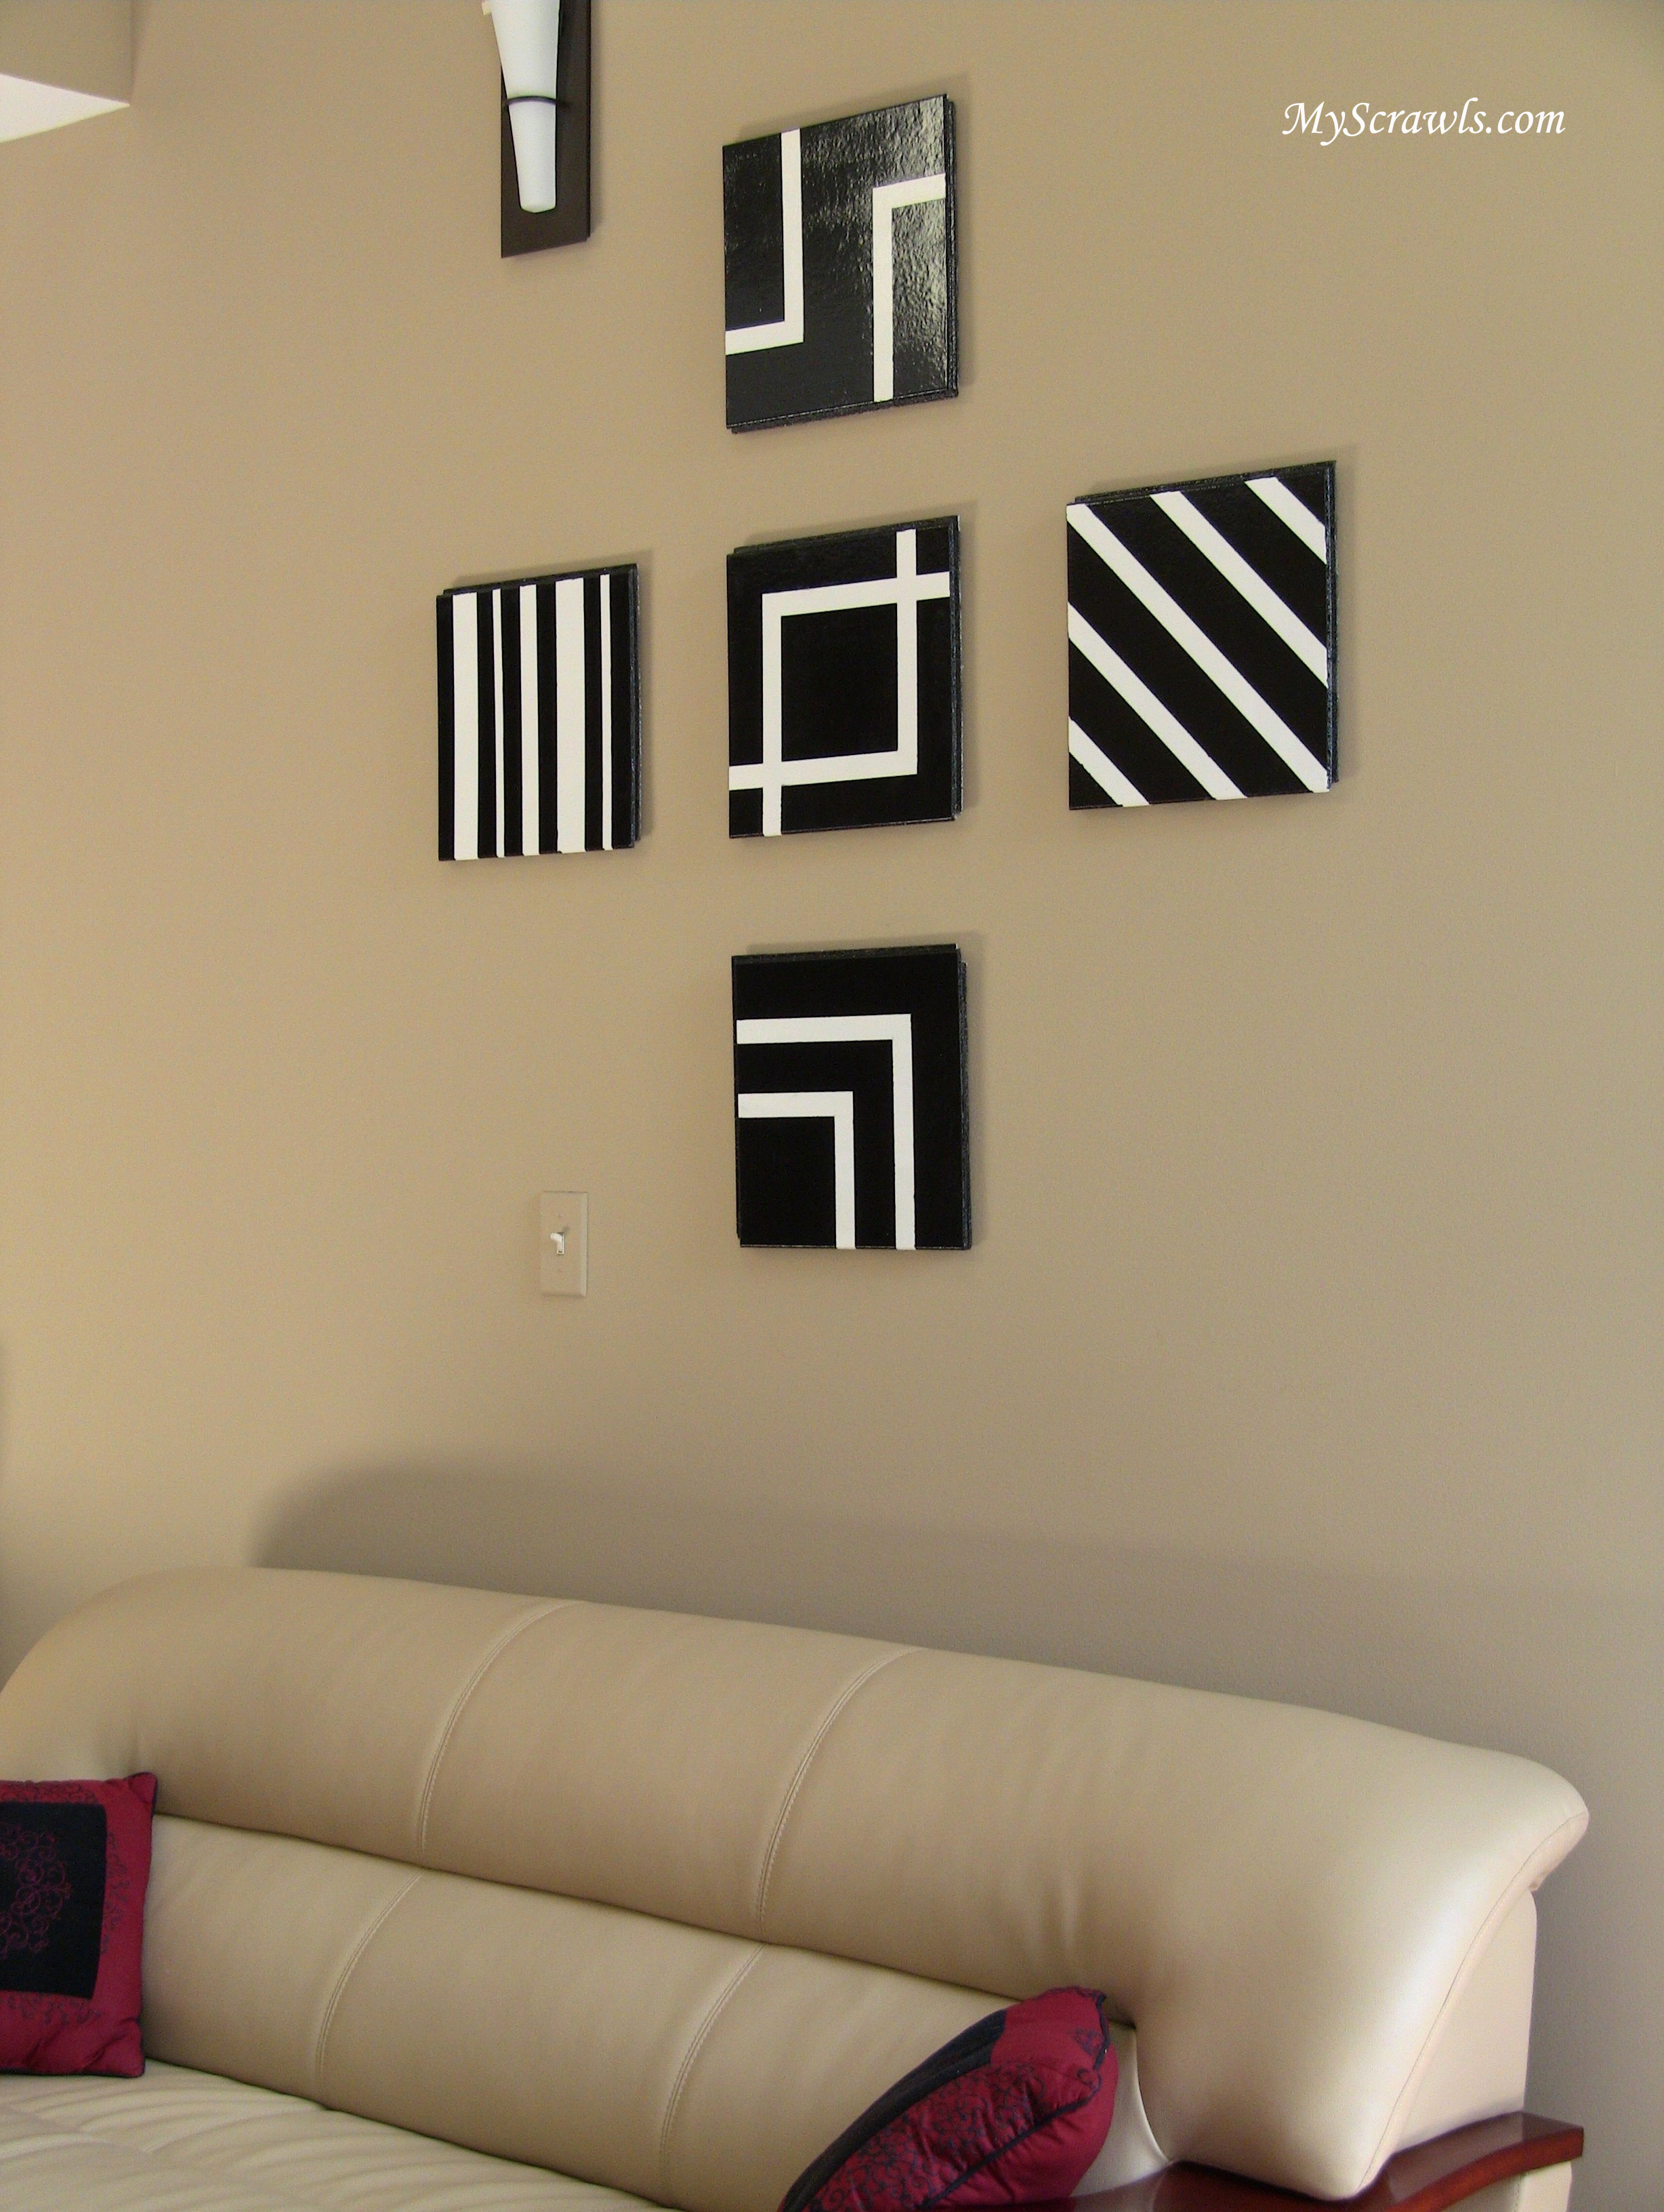 Wall Art Decor! | My Scrawls